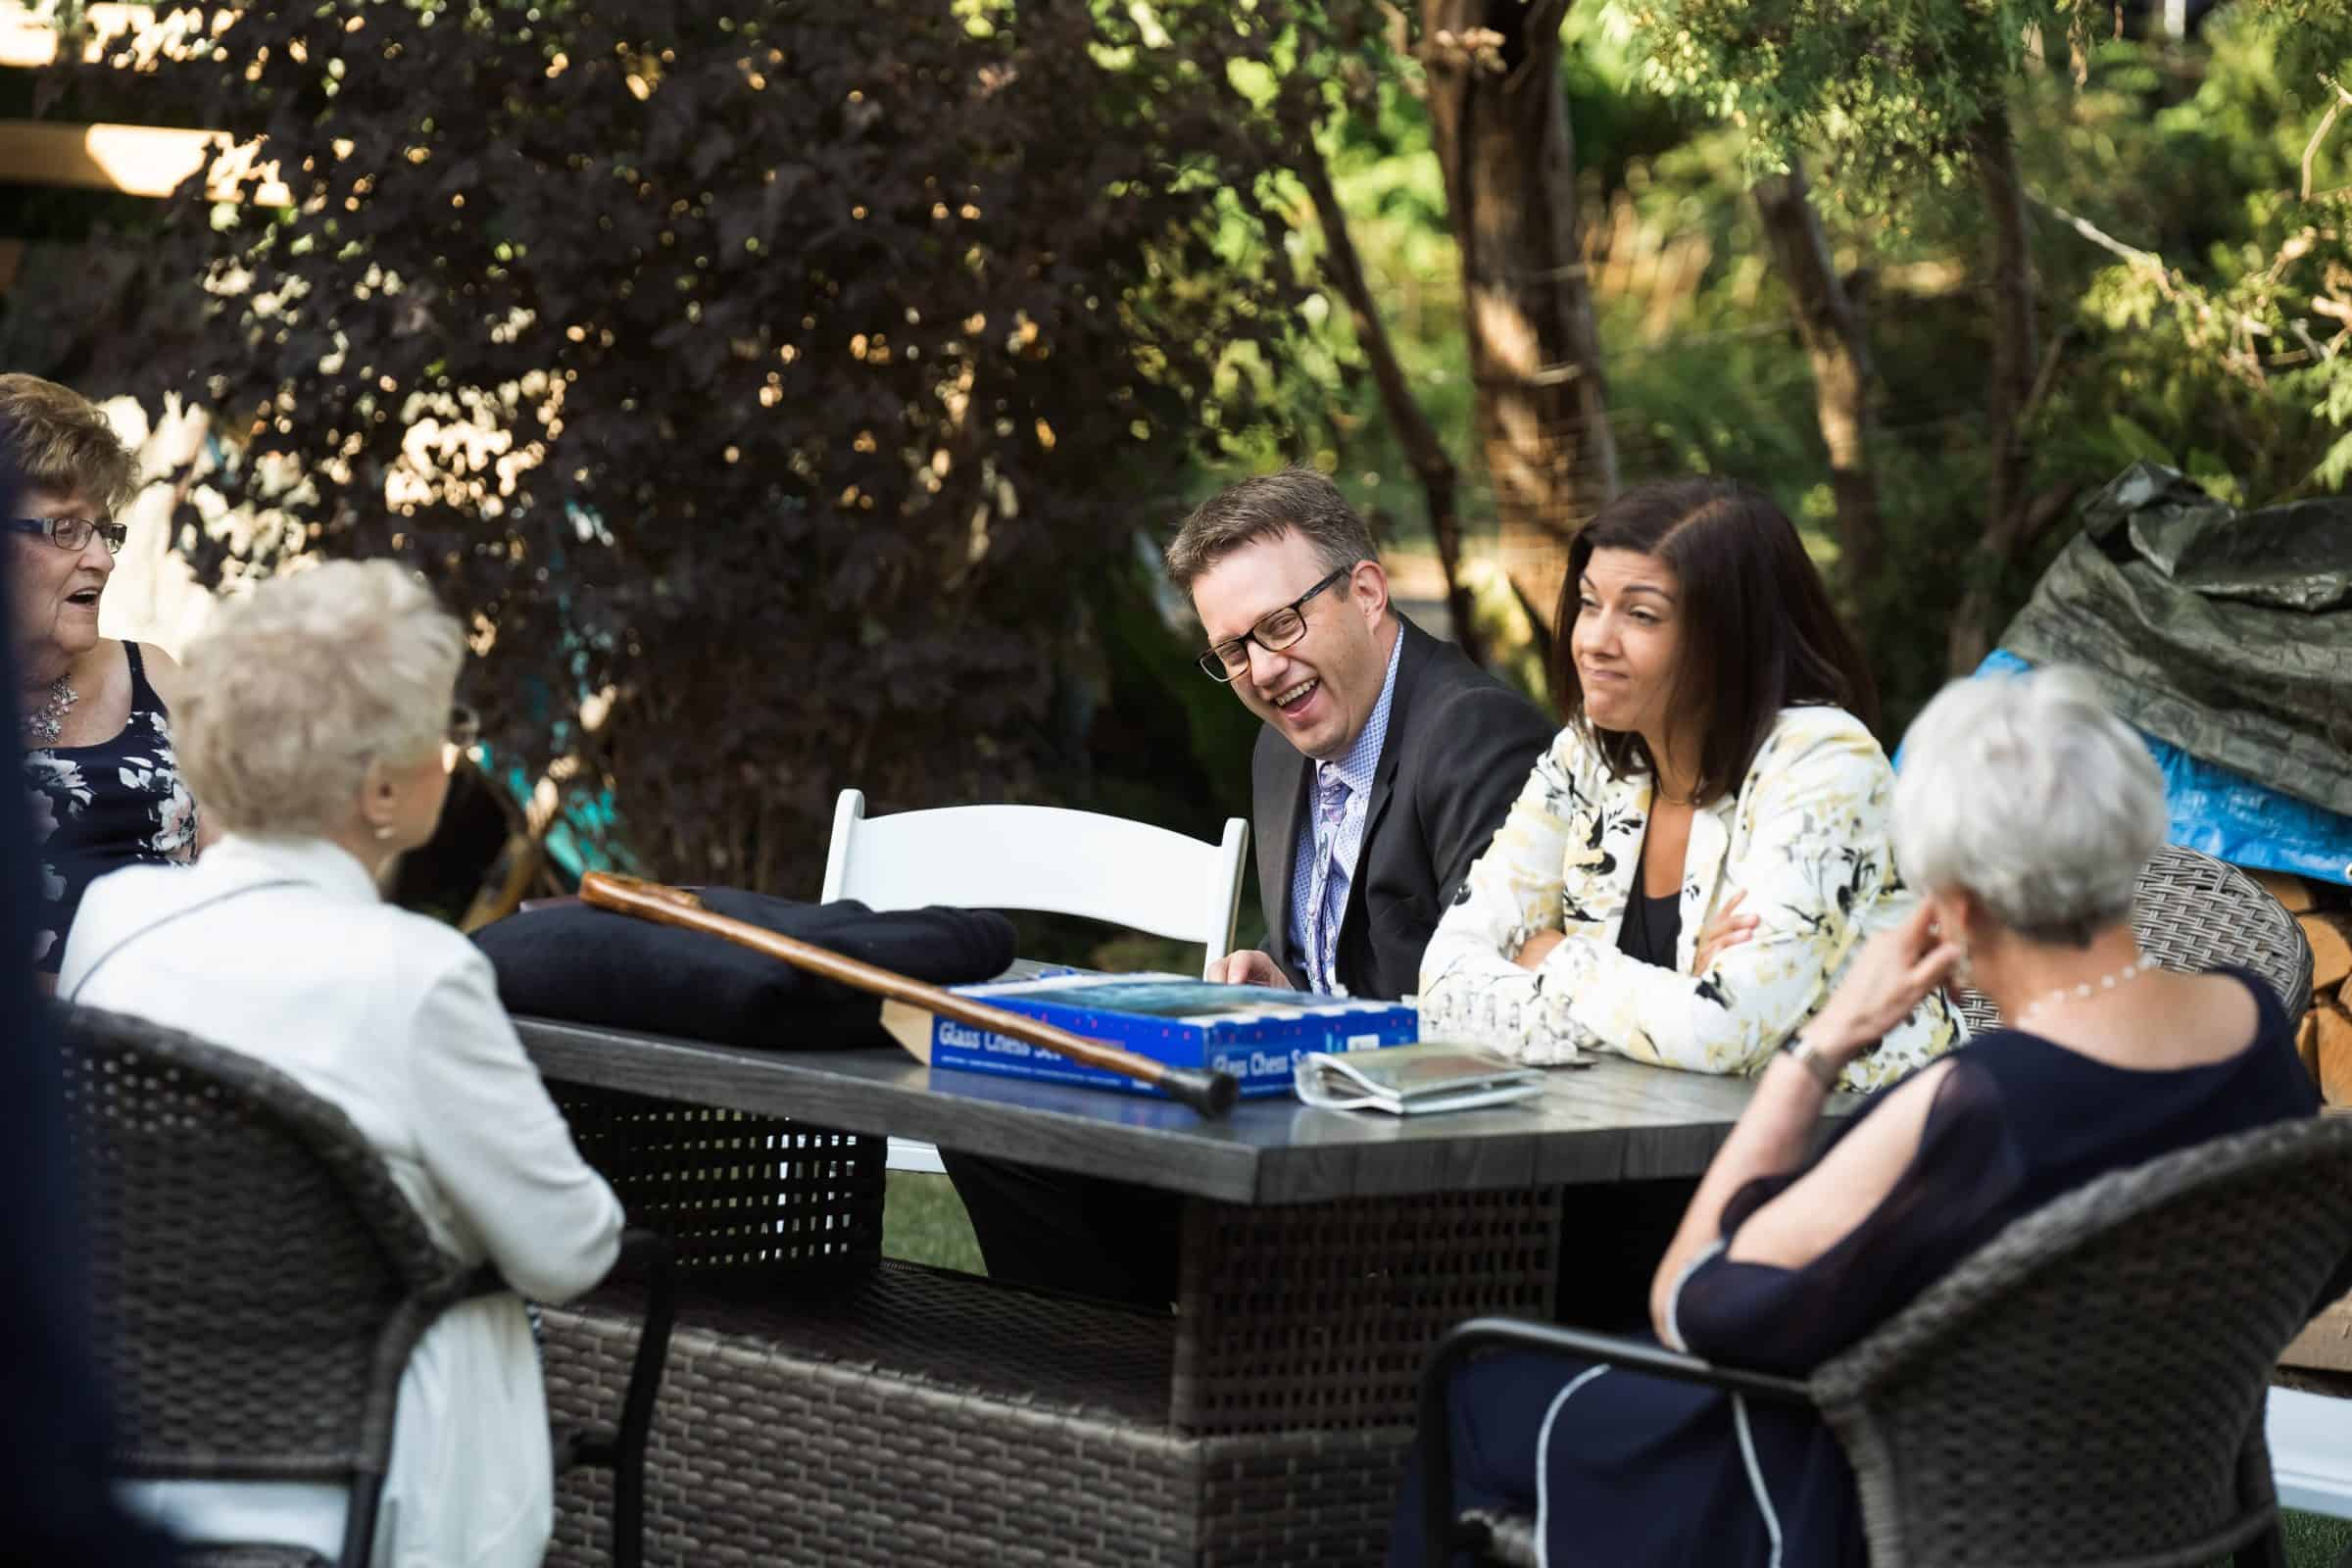 people laughing and conversing at table in backyard